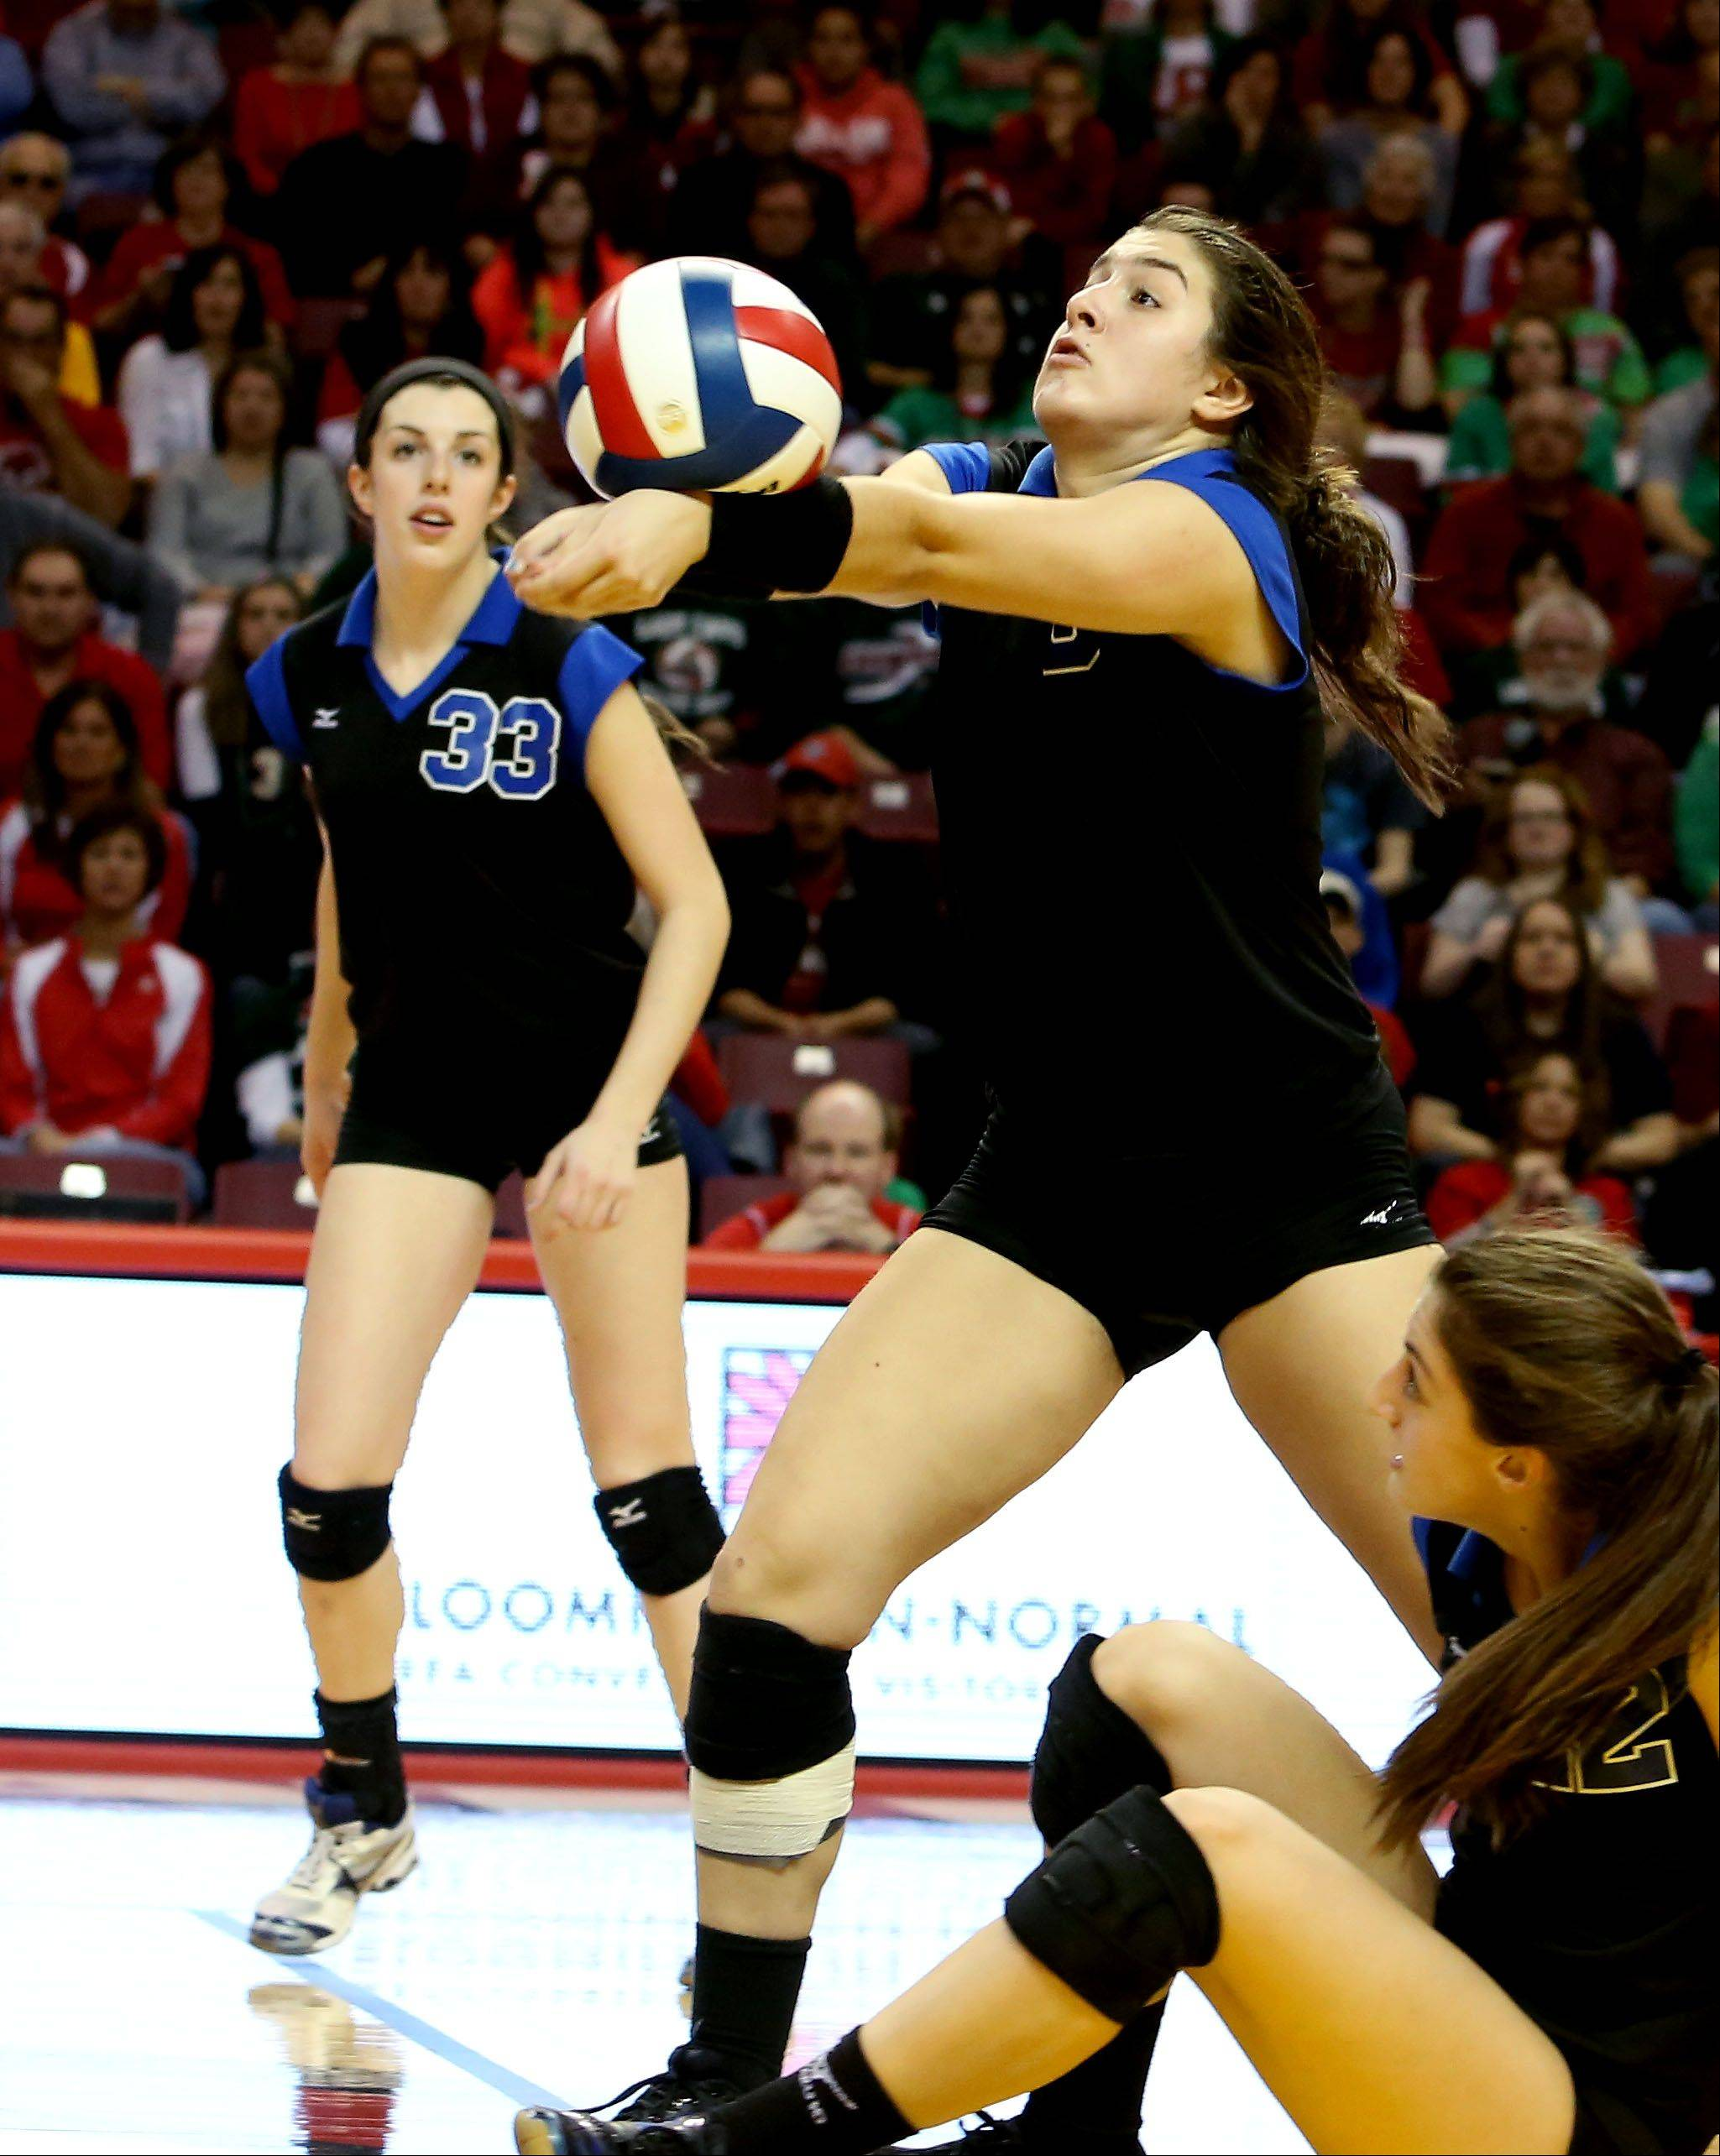 Lisa Mordell of St. Francis returns a serve from LaSalle-Peru in the Class 3A championship girls volleyball match on Saturday in Normal.